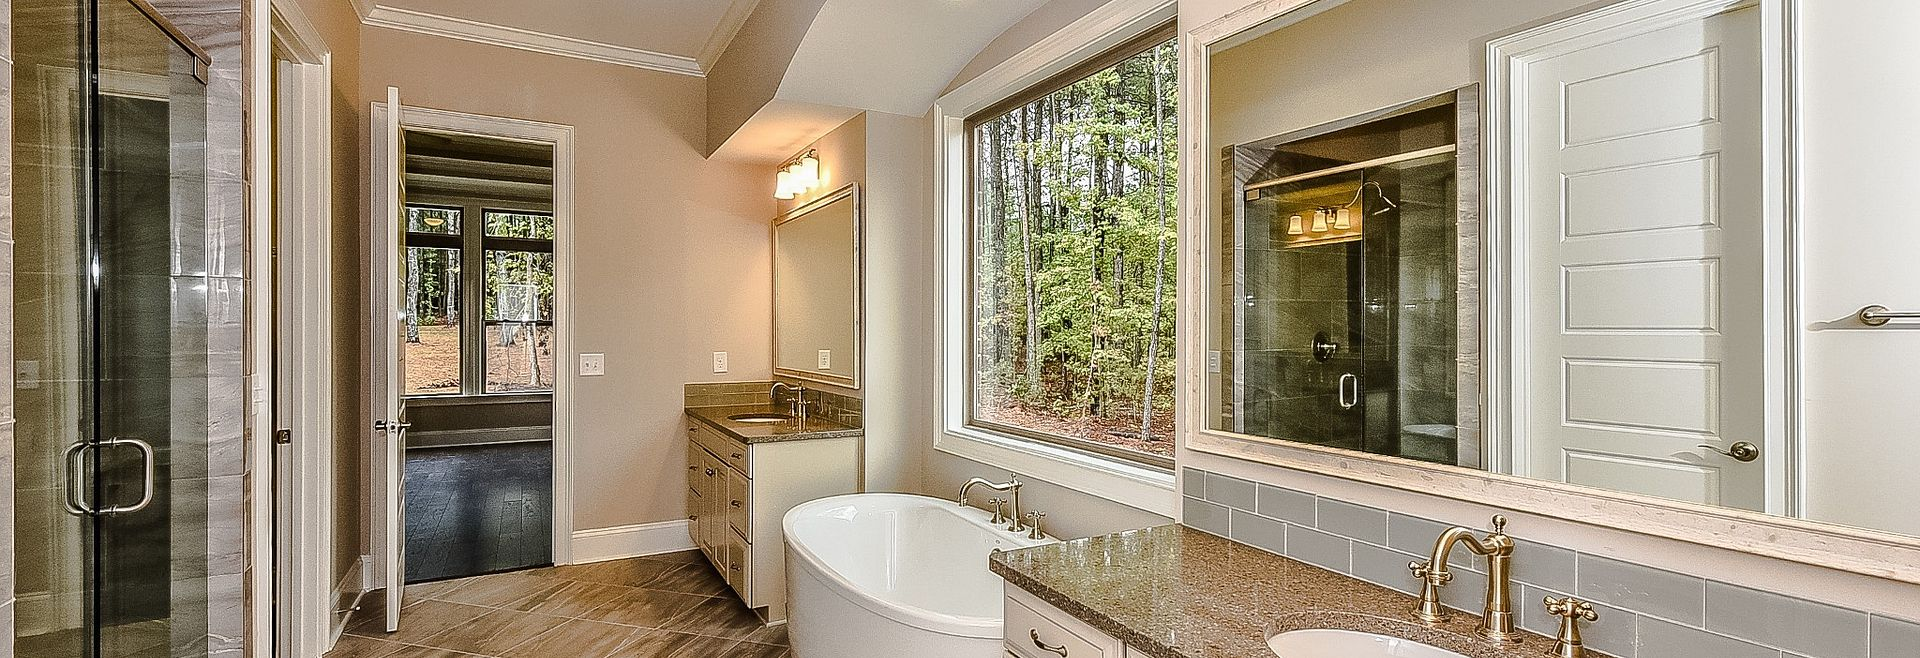 Aspen Plan Owner's Bath